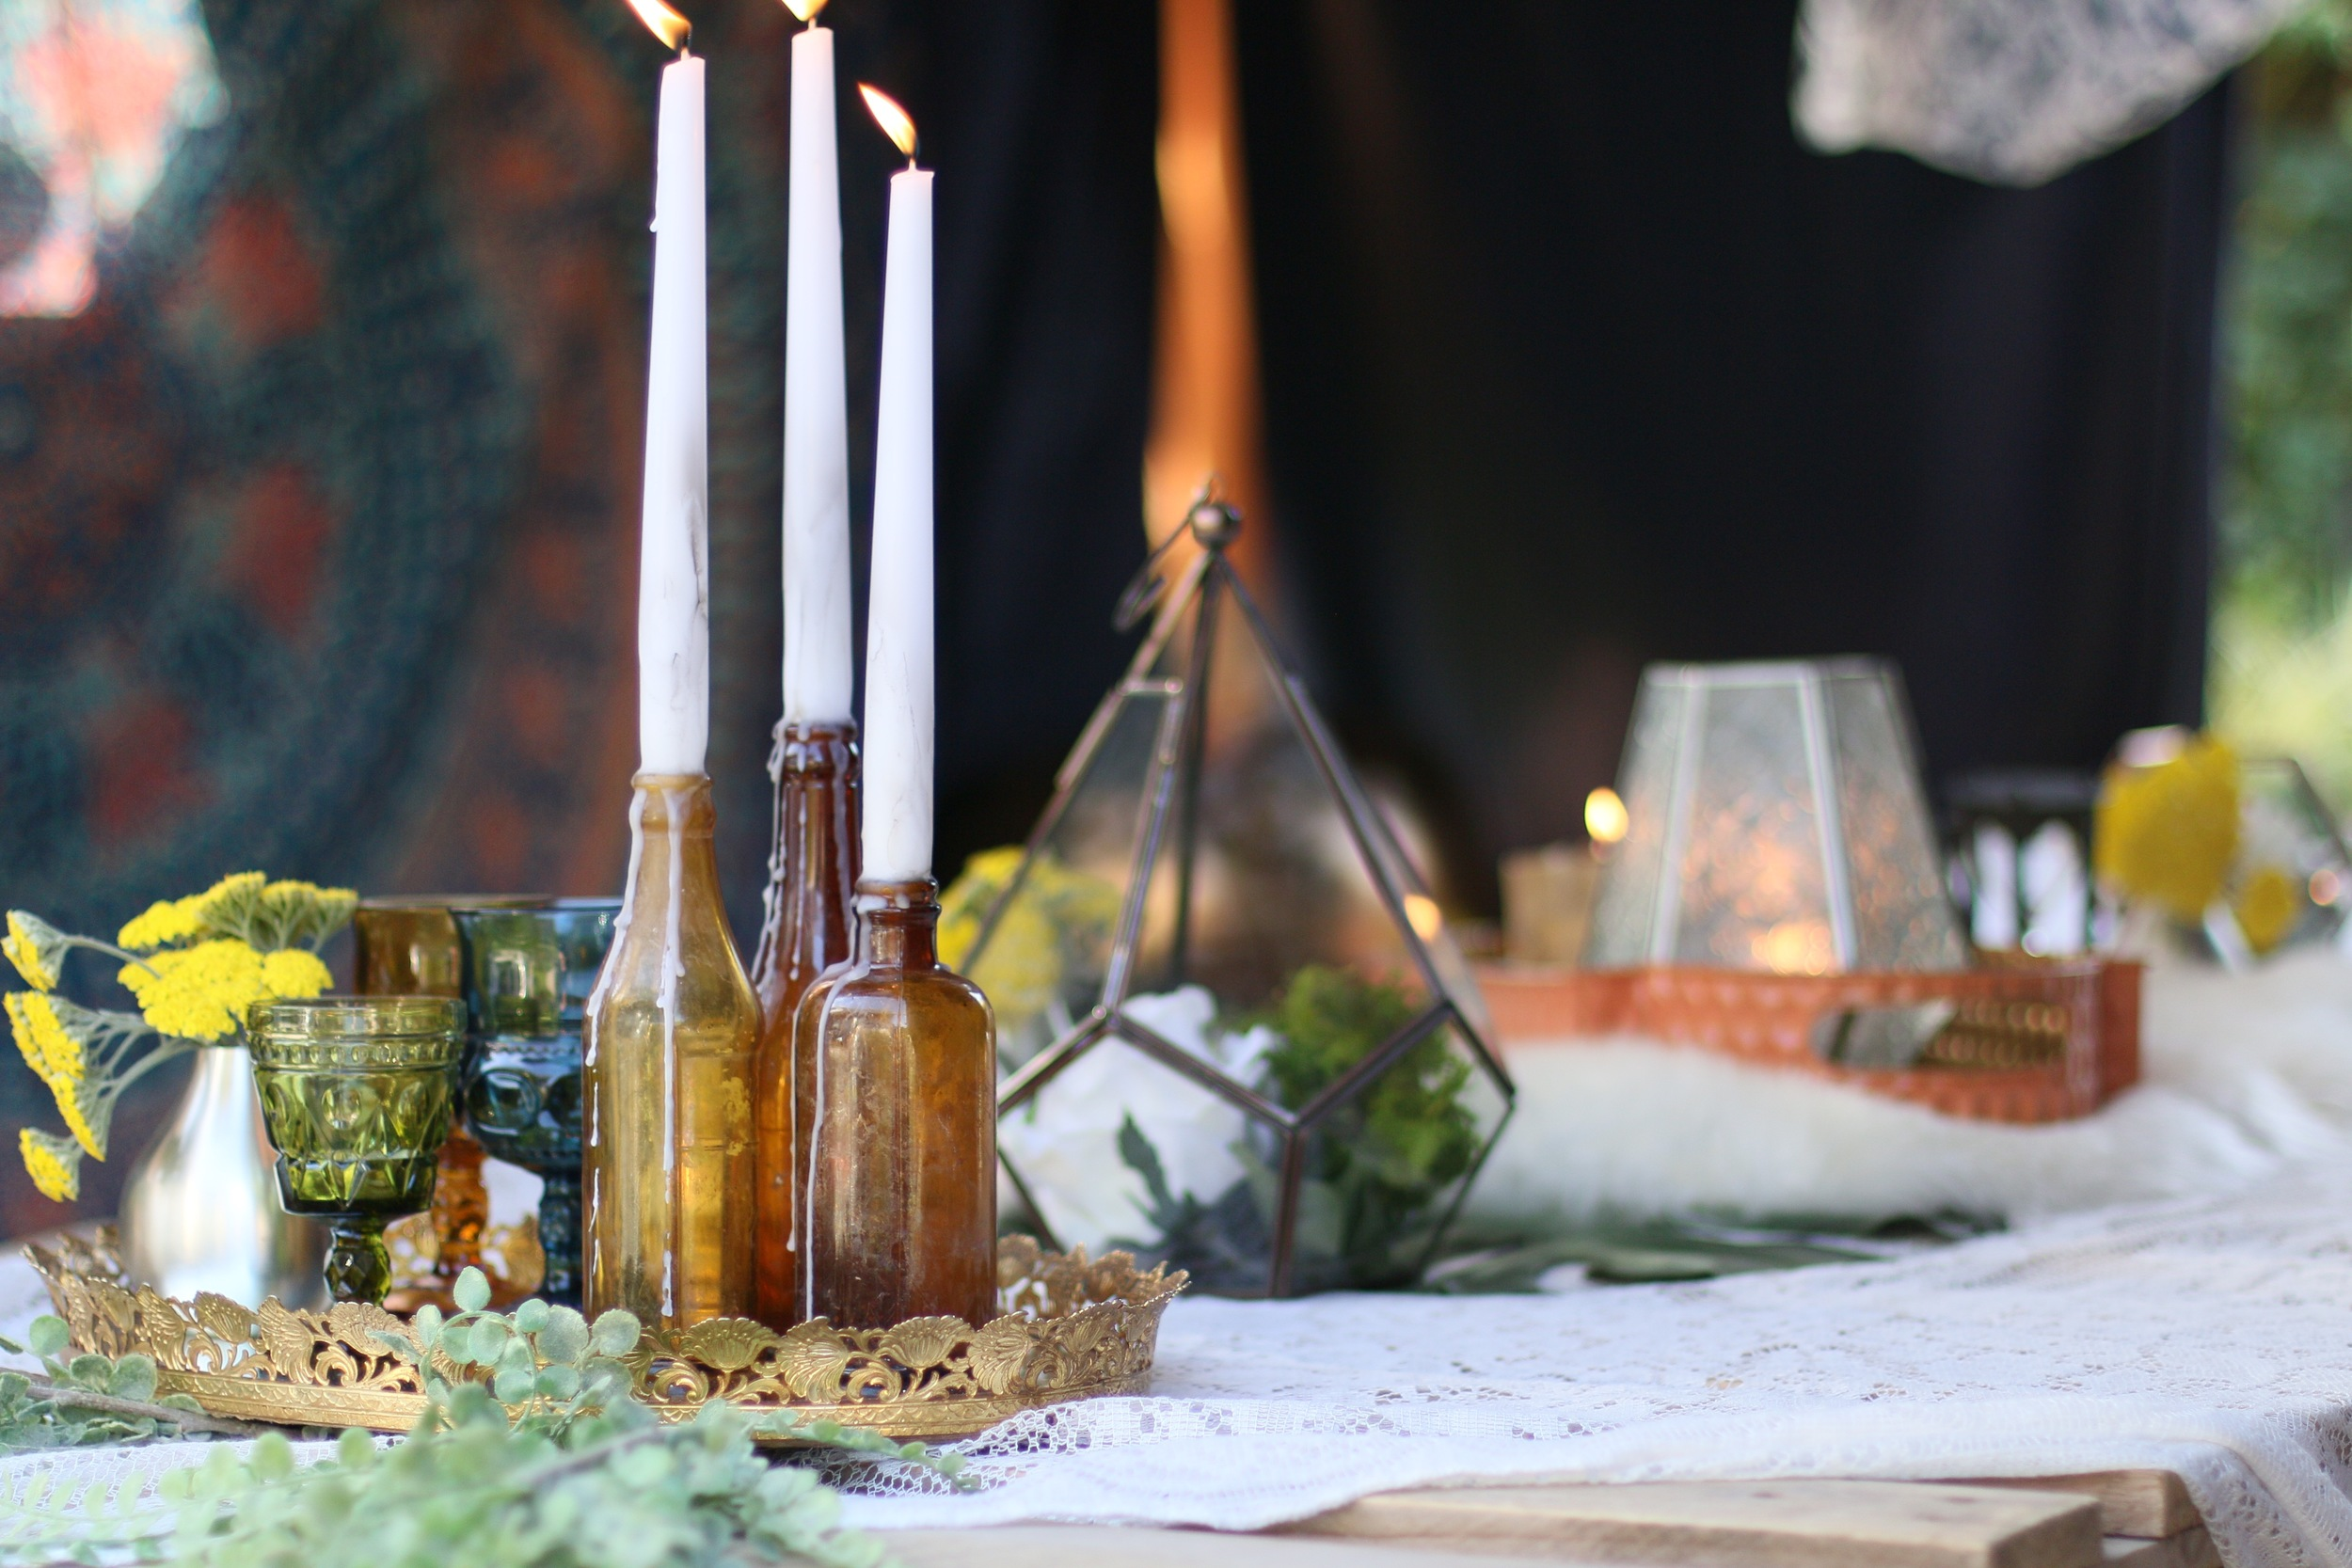 Copy of Low pallet tables, macramé & lace, geometric vessels, florals, textured rugs, colorful textiles, dream catchers, lanterns, candlelight…Basically a Bohemian dream. A curated collection for you to rent!